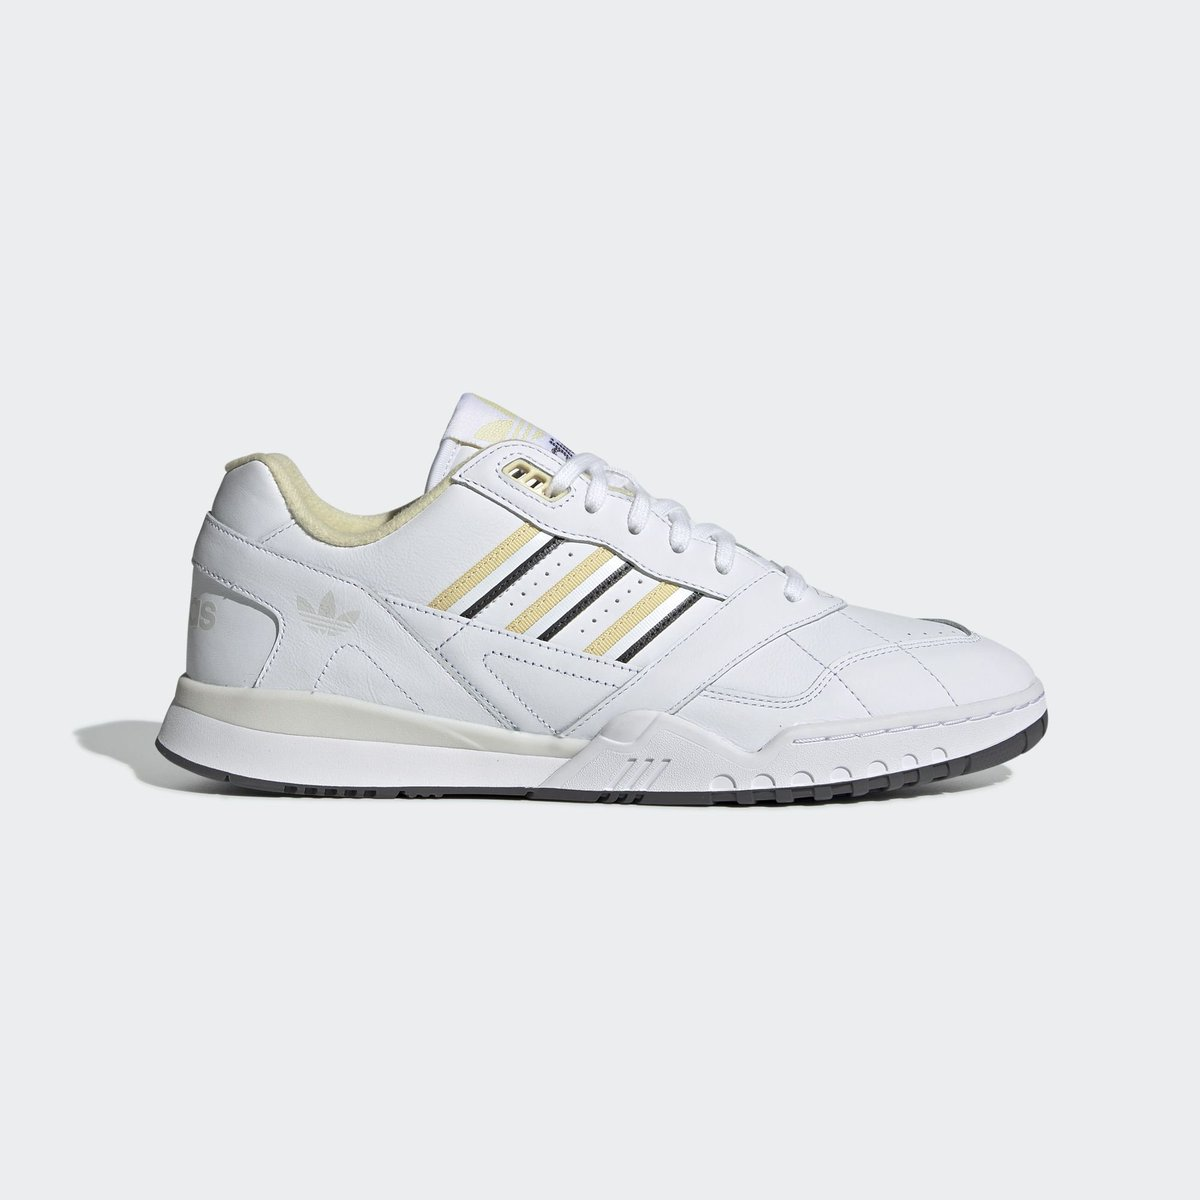 c1dc6a4adb9 adidas alerts Twitter Tweet  Now available on  adidas US. adidas AR Trainer.